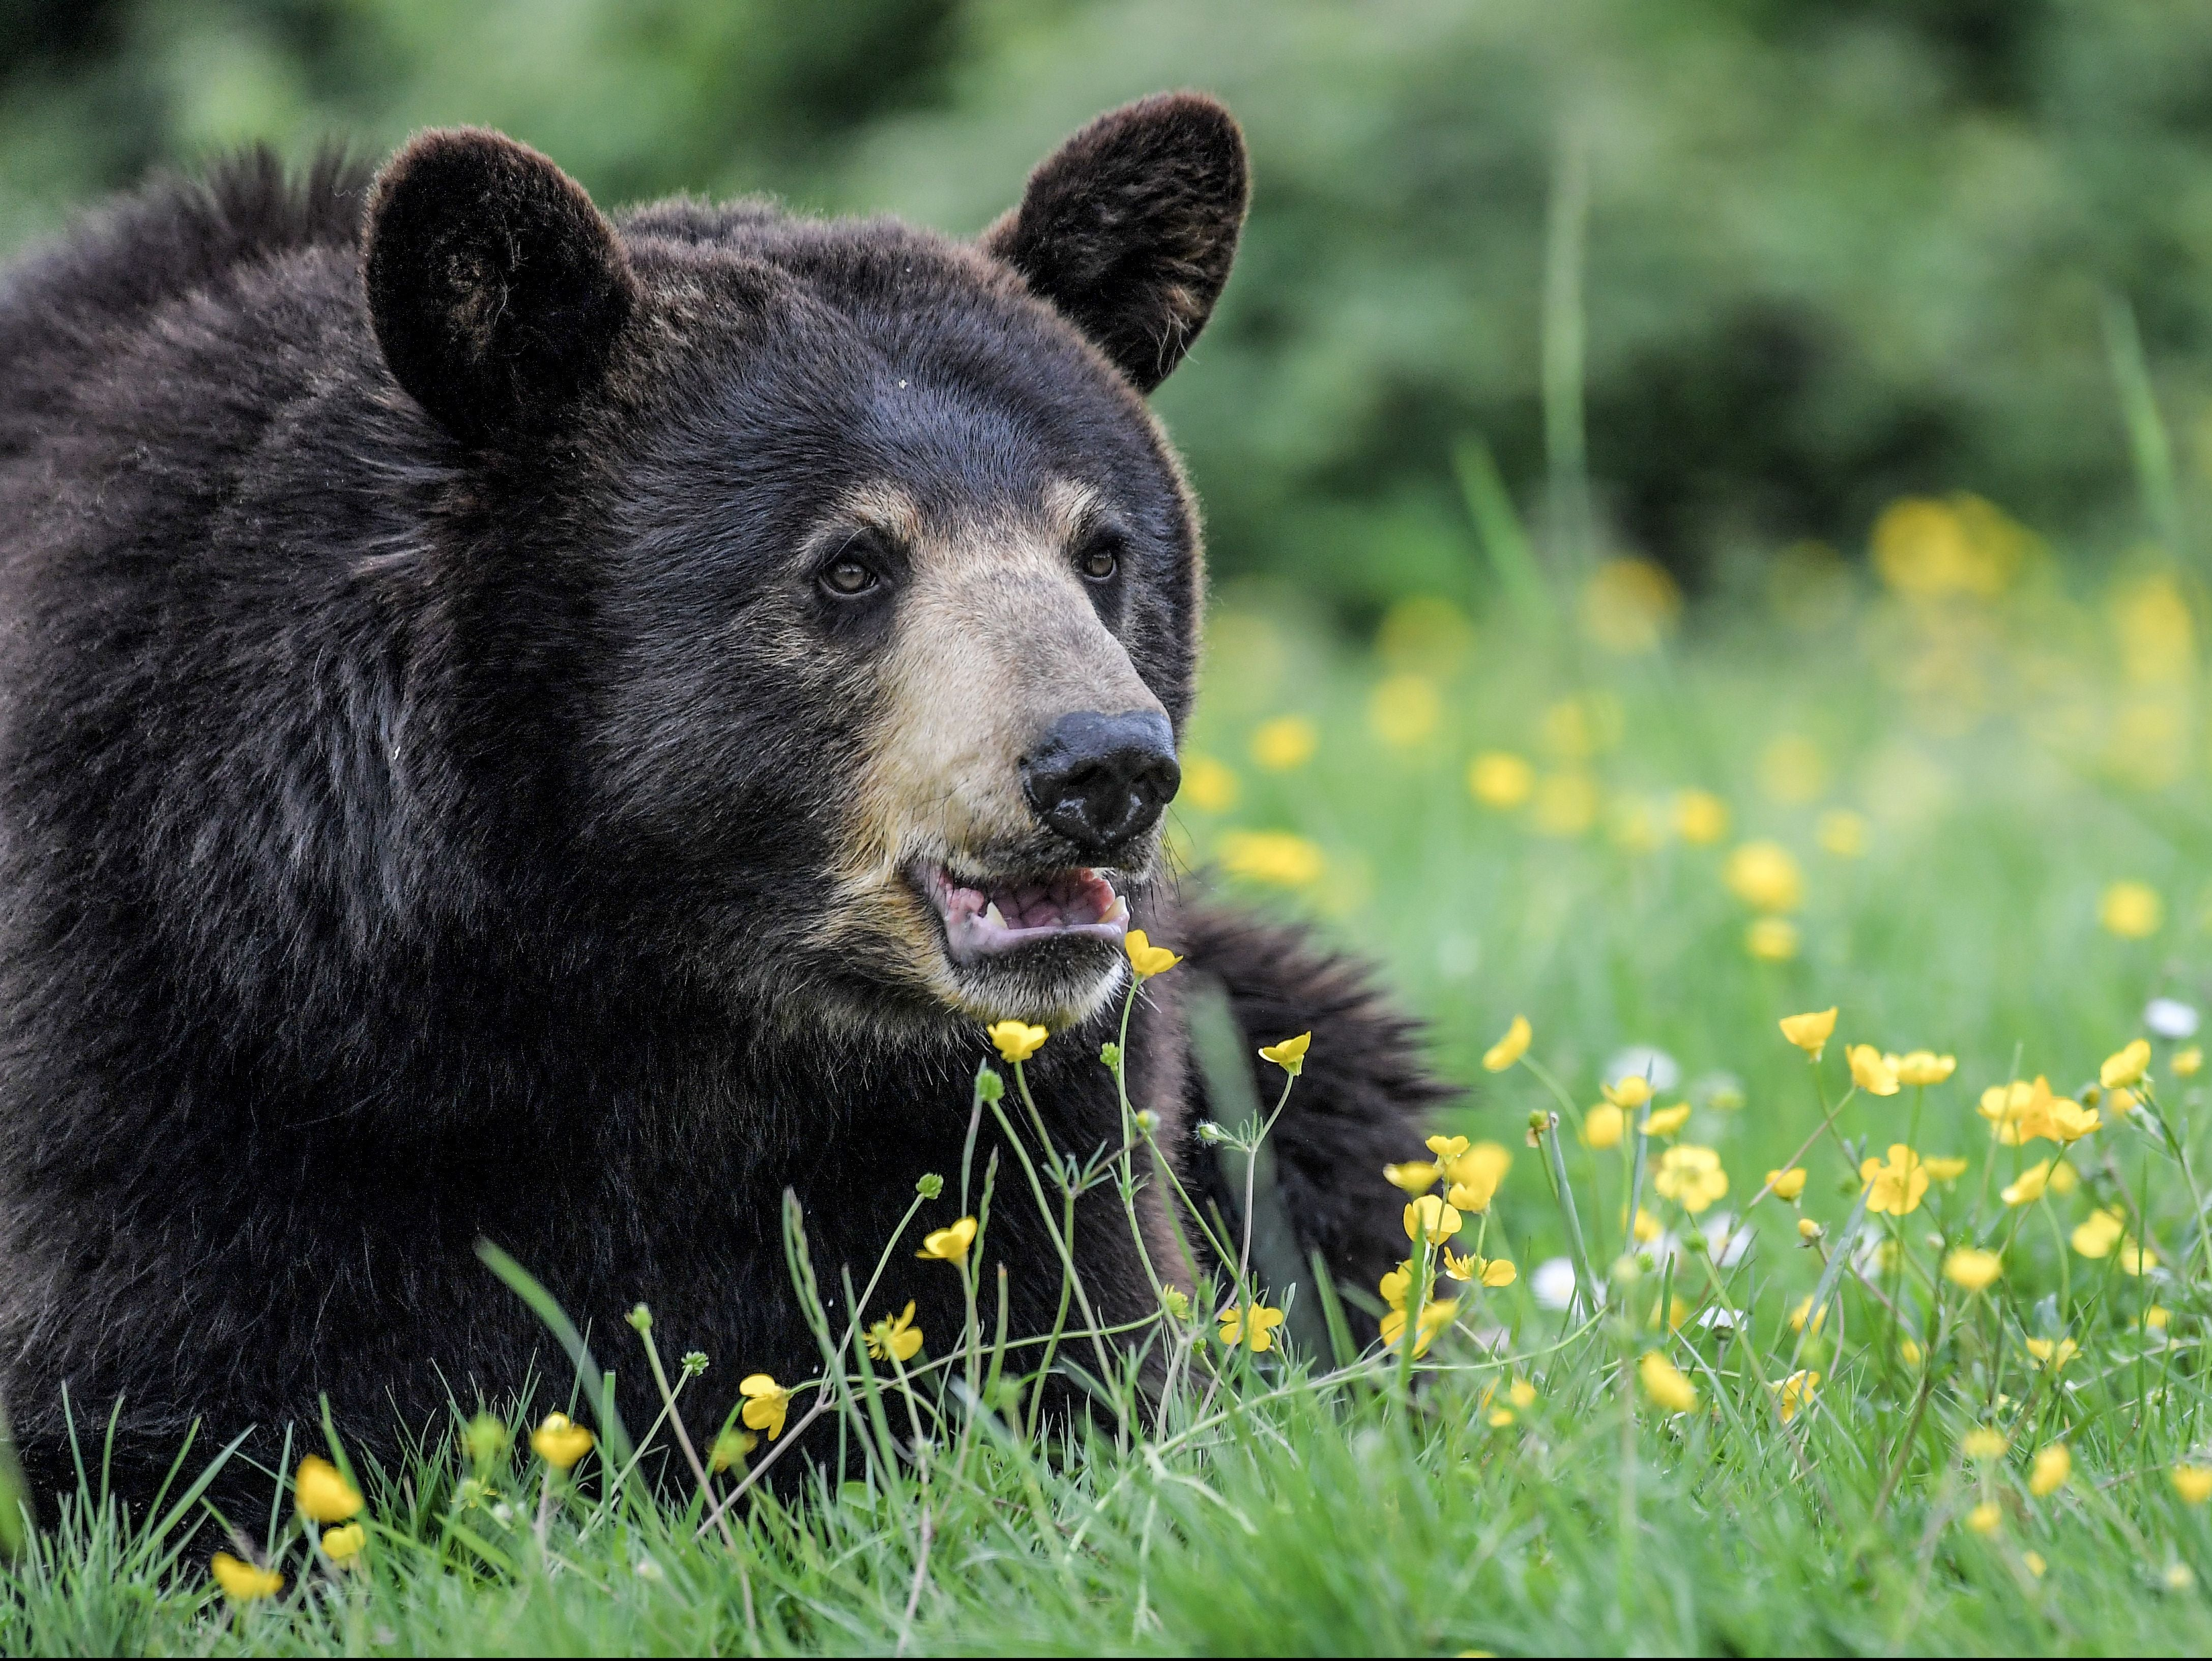 Woman faces jail time after feeding a bear on Tennessee, officials say